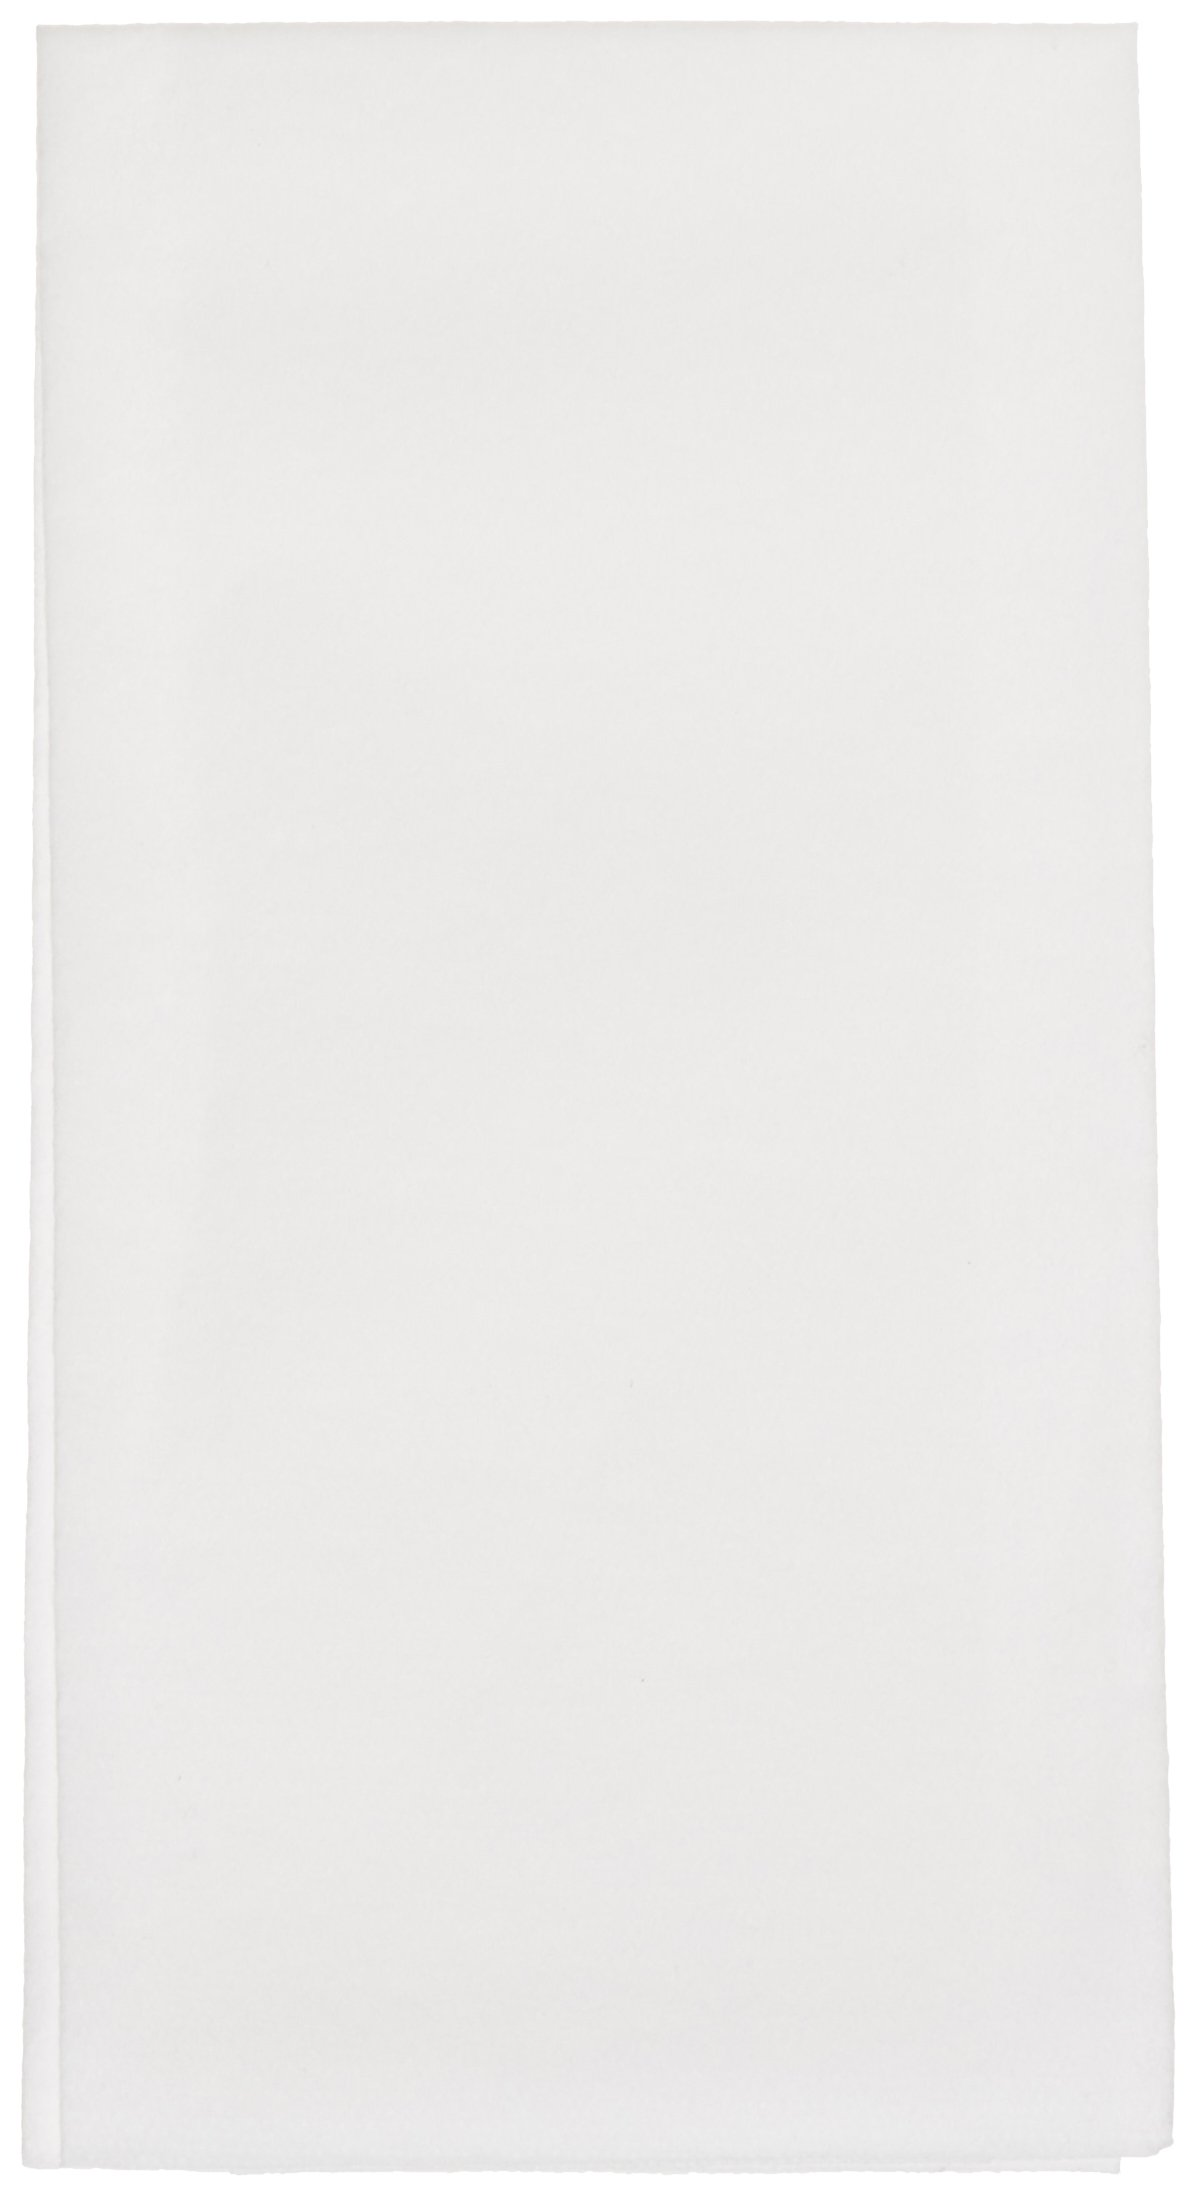 Hoffmaster 856802 Linen-Like Guest Towel, 1/6 Fold, 17'' Length x 12'' Width, White (Case of 300)